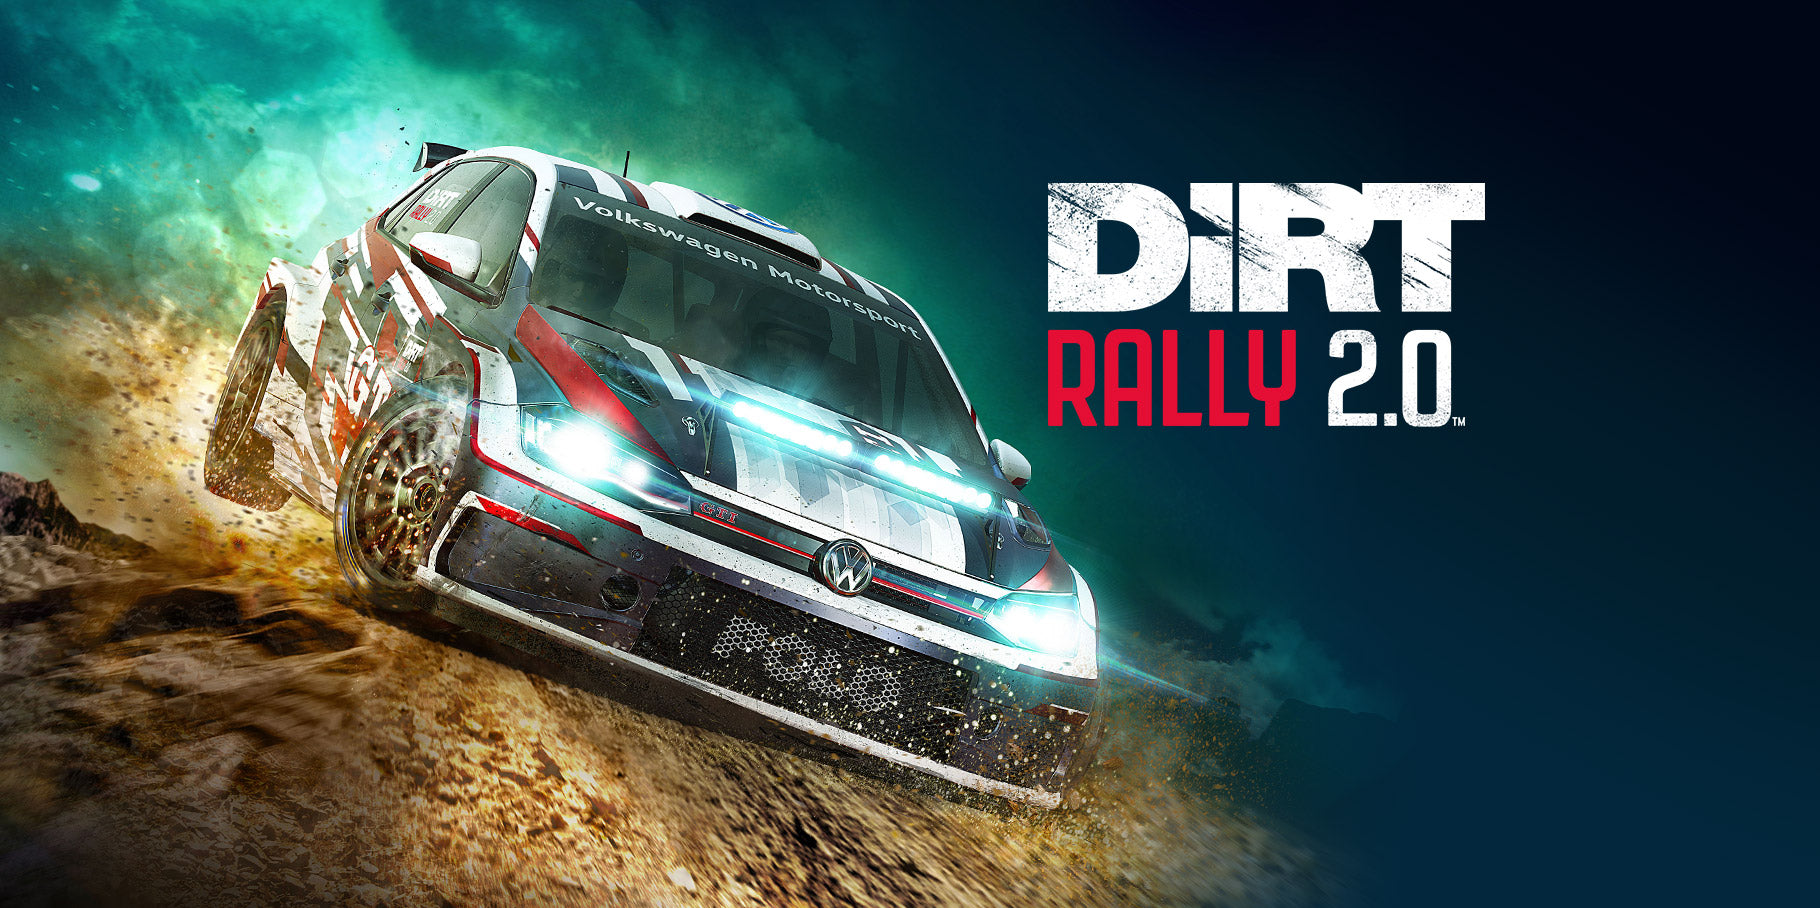 Dirt Rally 2.0 - PS4 April 2020 Free Game